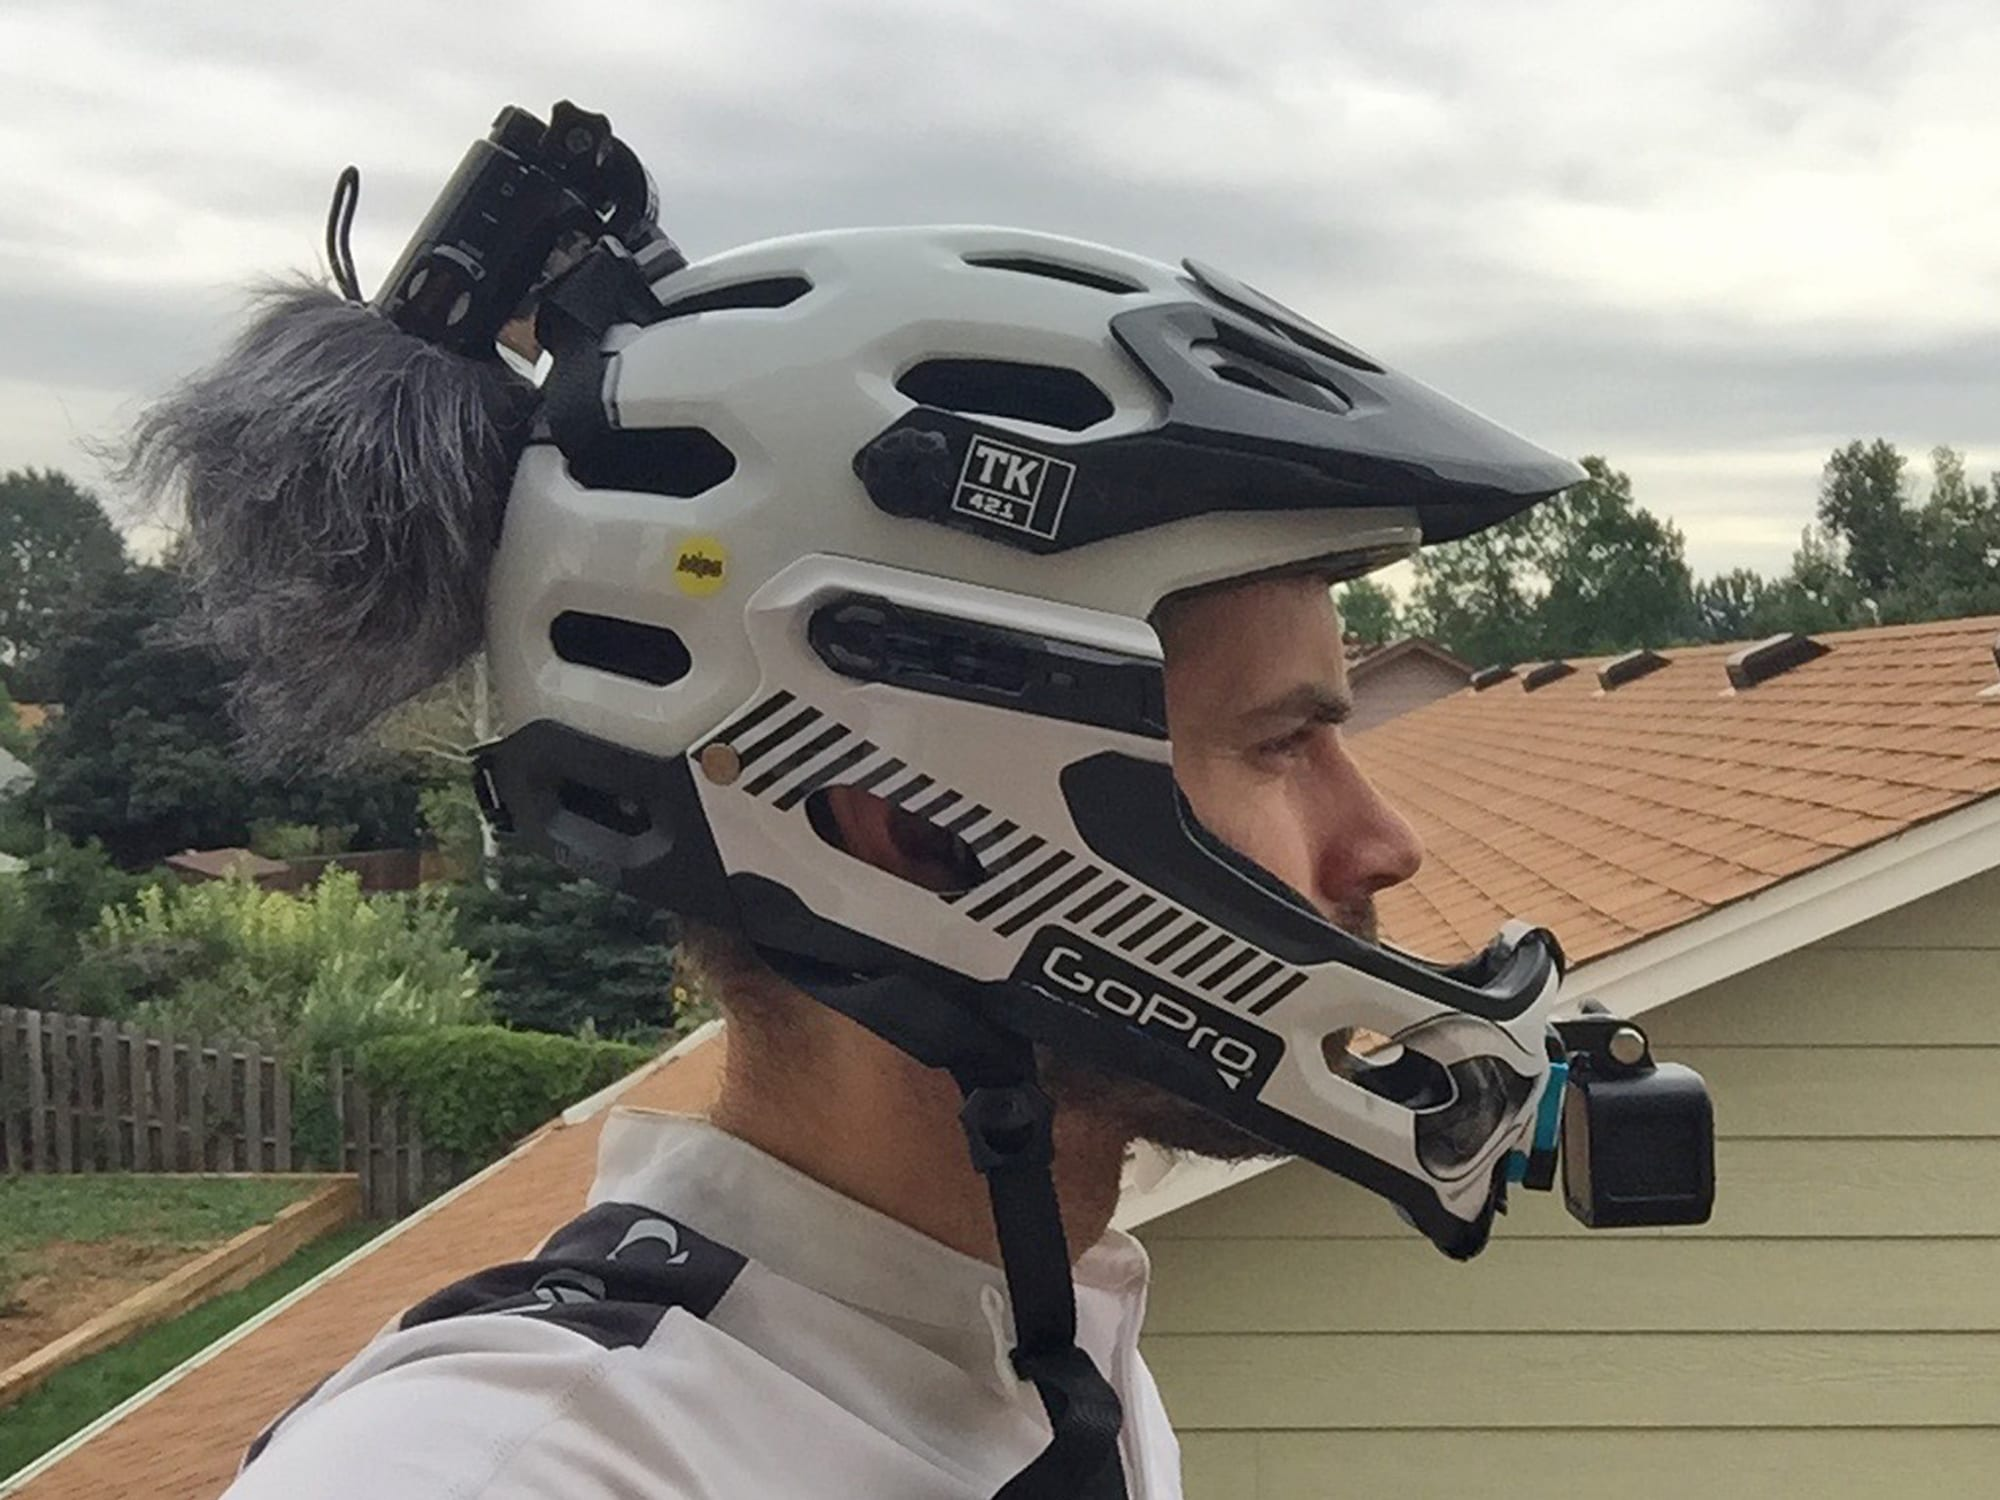 Bell Super 2r Mips Helmet Review Prices Specs Videos